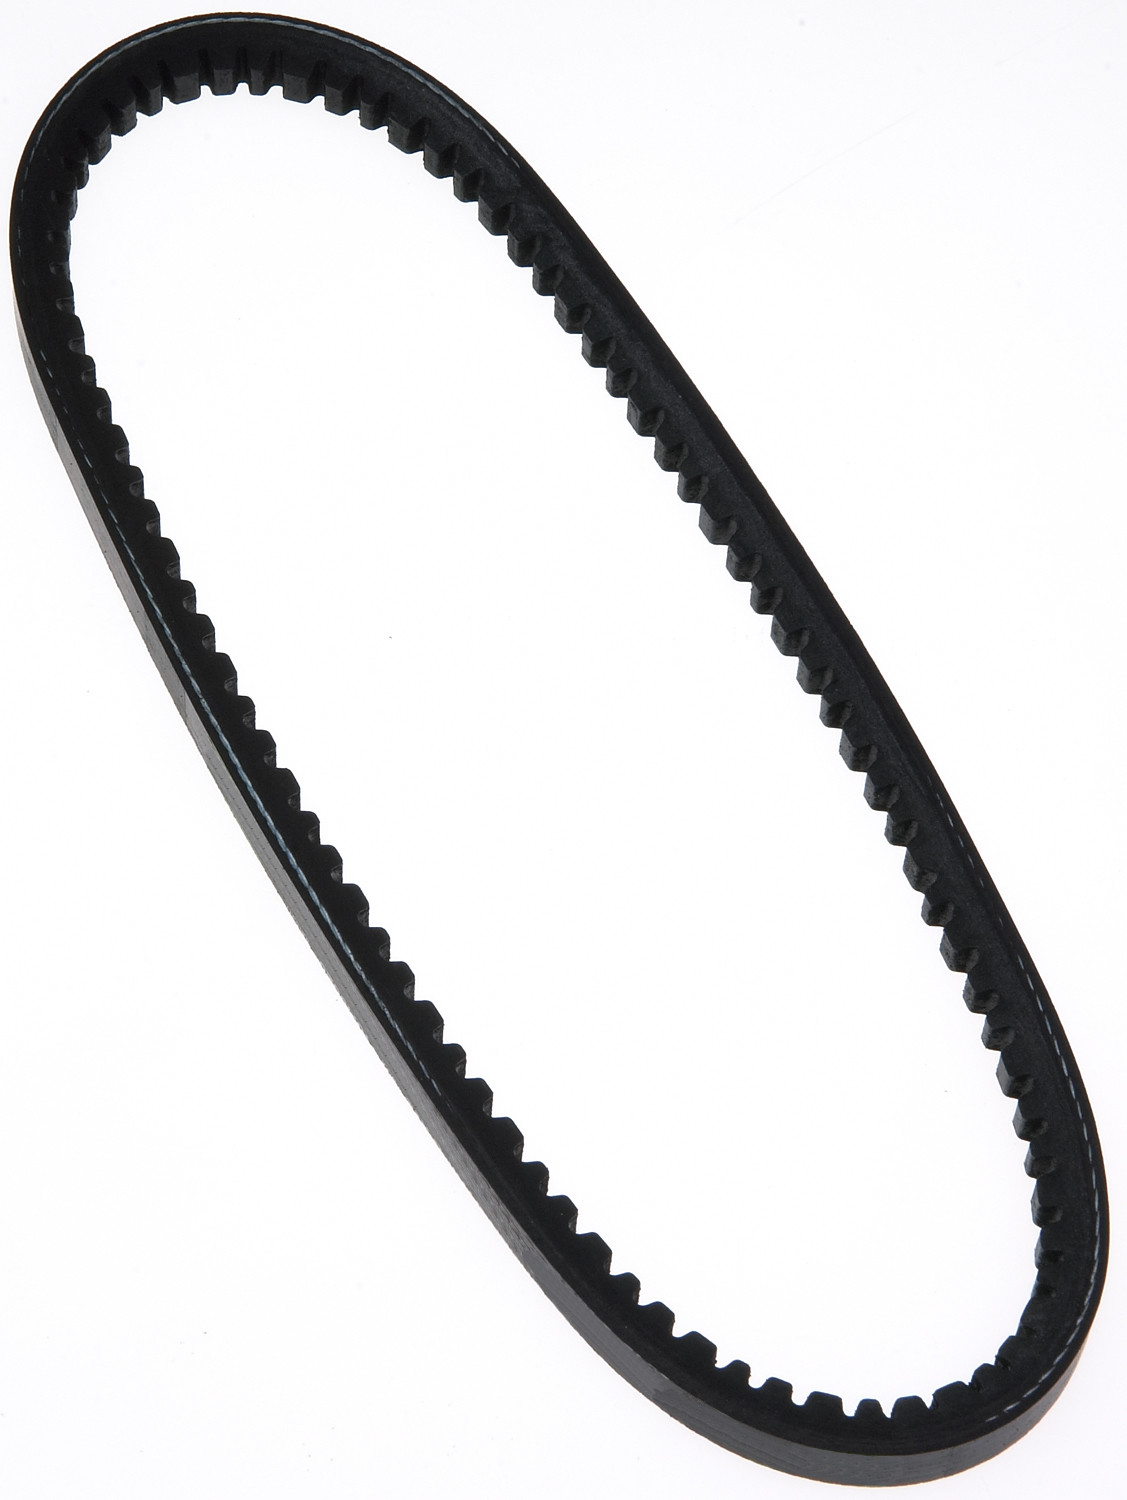 ROADMAX - High Capacity V-Belt(Standard) - RMX 17375AP